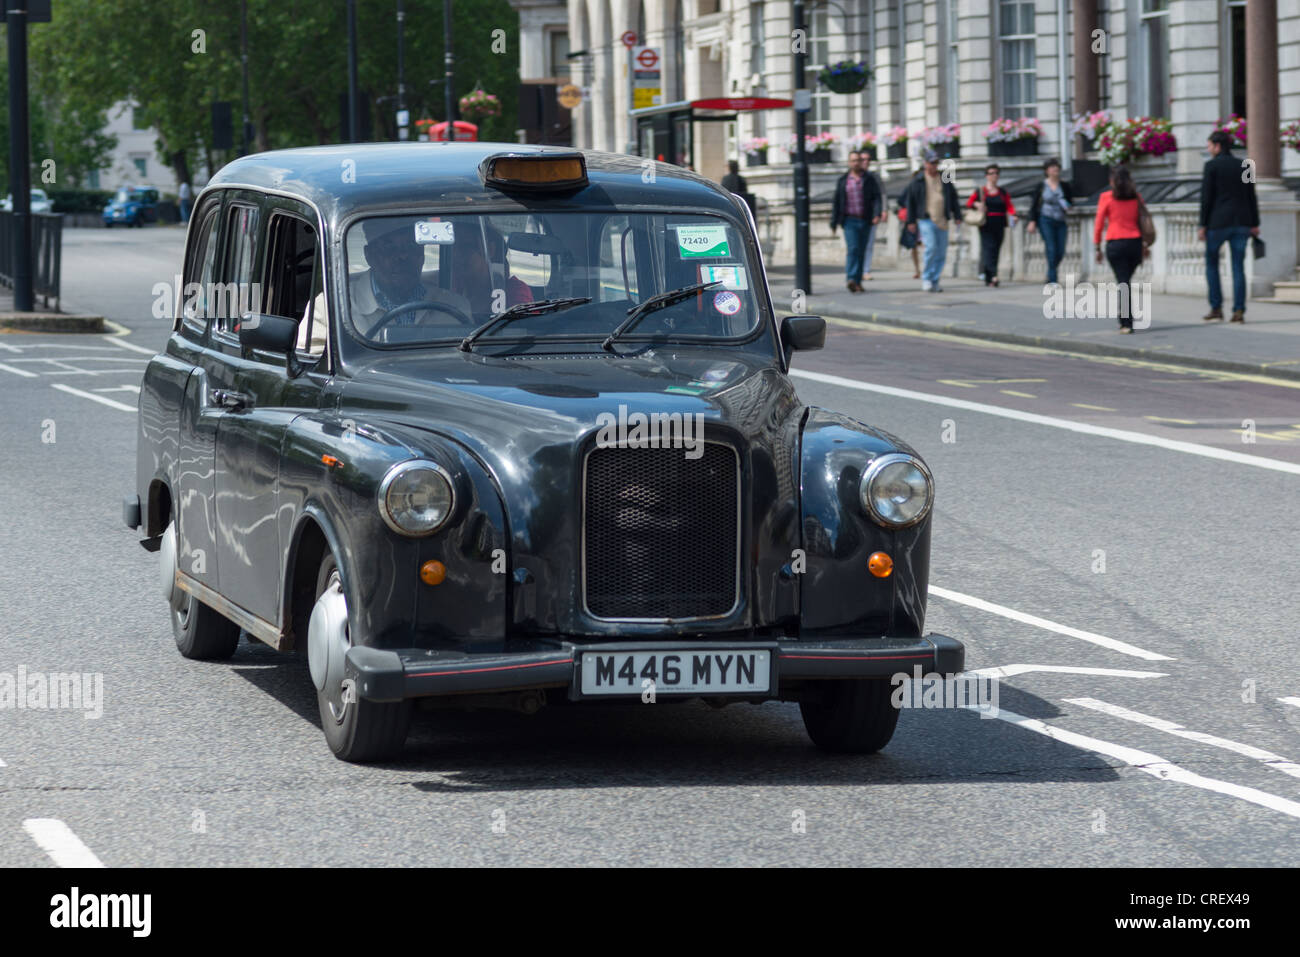 Le Cab Taxi Black Taxi Cab Photos And Black Taxi Cab Images Alamy